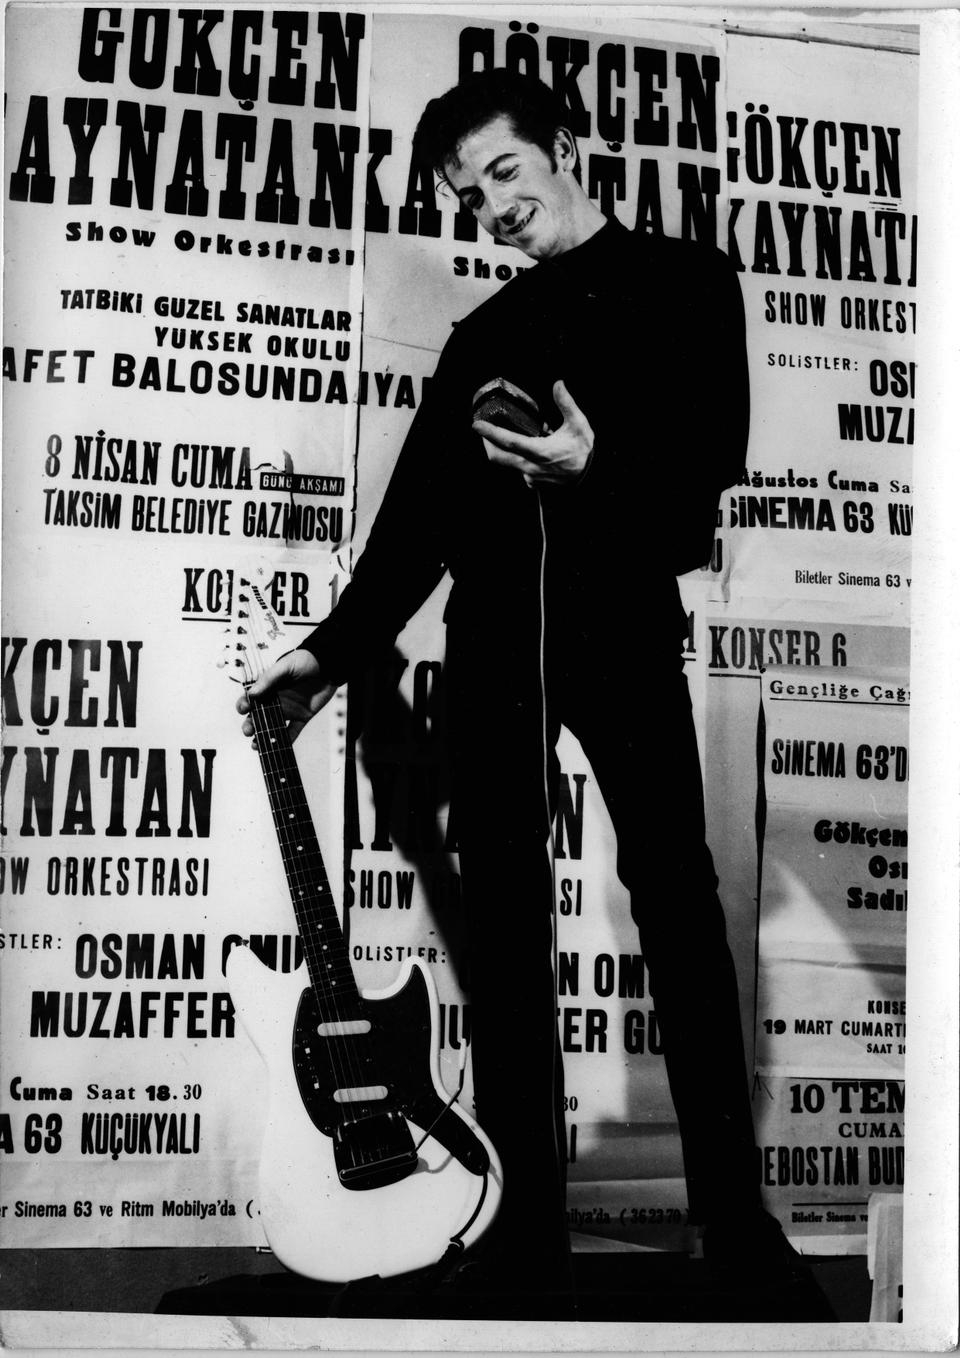 In a photo from 1960, Gokcen Kaynatan, then a 21-year-old student, poses with his guitar in front of posters announcing an April concert at the ball for Tatbiki Guzel Sanatlar Yuksek Okulu—today's Marmara University Faculty of Fine Arts—students, the university he attended for Interior Architecture and Industrial Design.